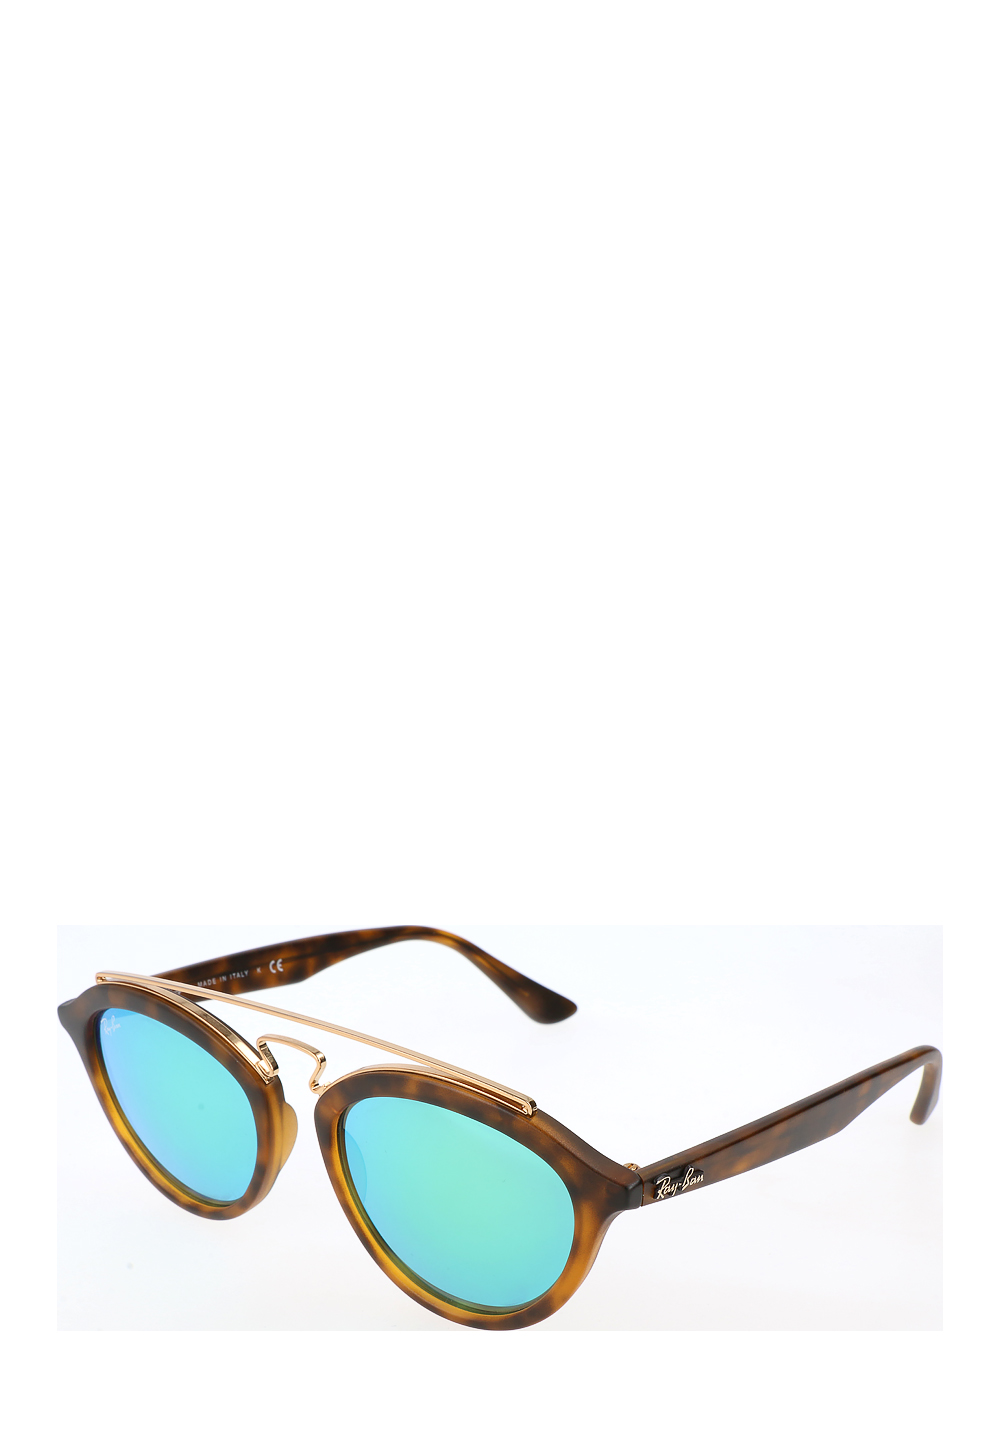 Ray-Ban Sonnenbrille Rb4257, UV 400, braun | Accessoires > Sonnenbrillen > Sonstige Sonnenbrillen | Braun | Ray-Ban